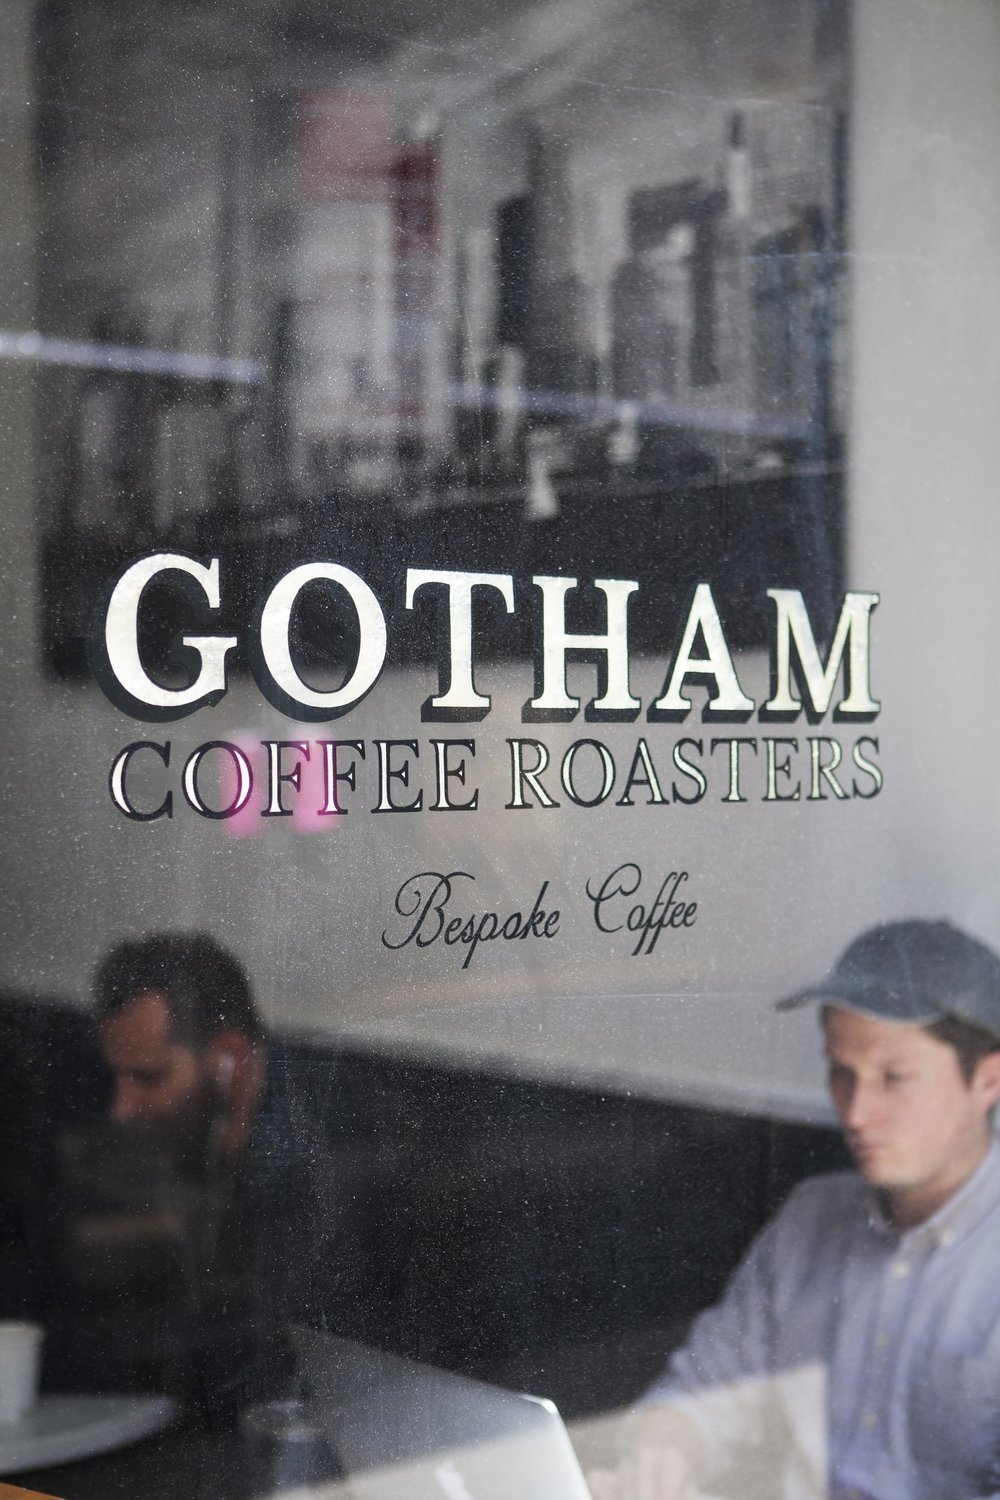 PHOTOS via Gotham Coffee Roasters/Chris Calkins